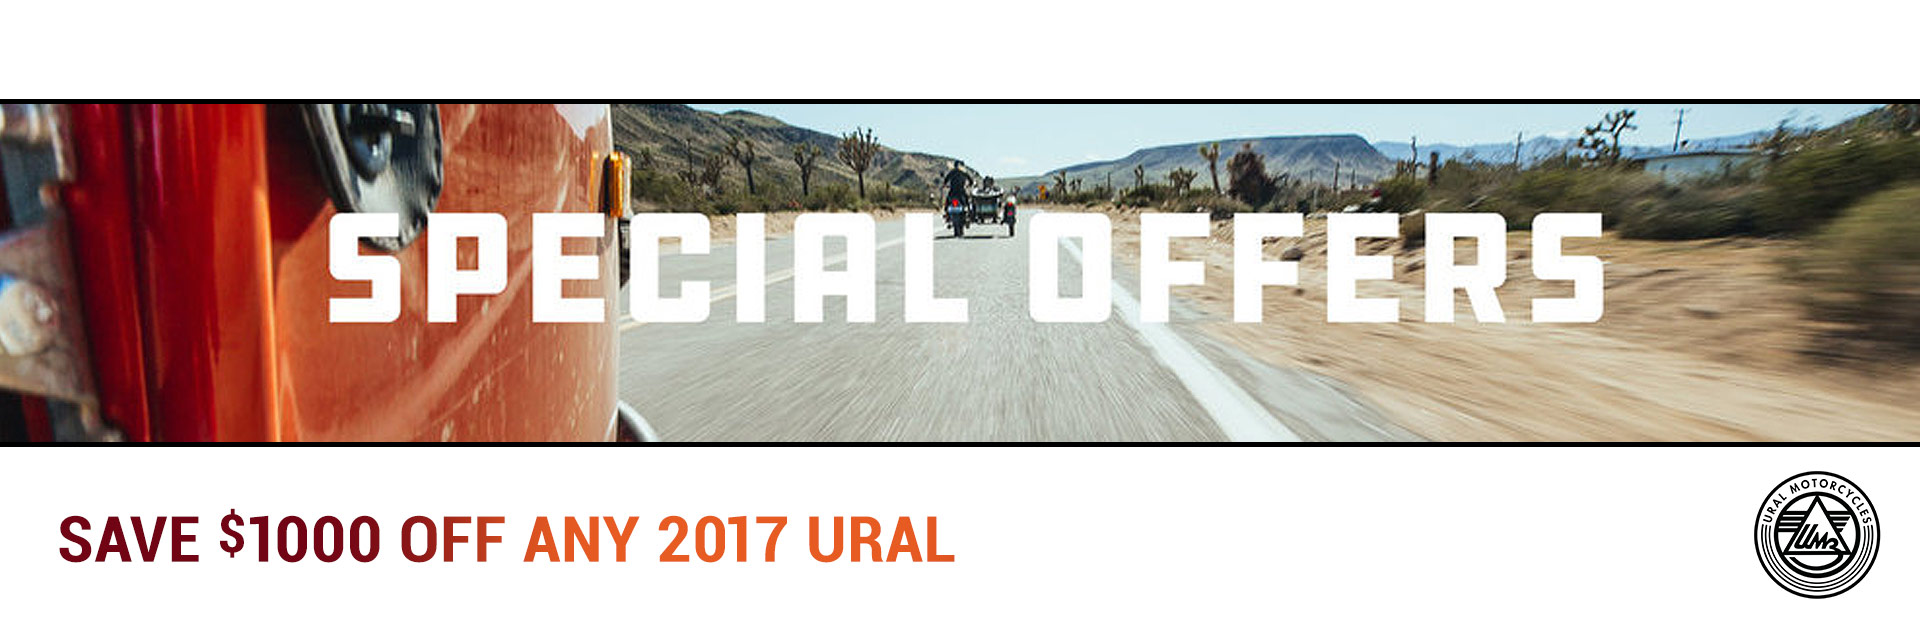 Save $1000 Off Any 2017 Ural